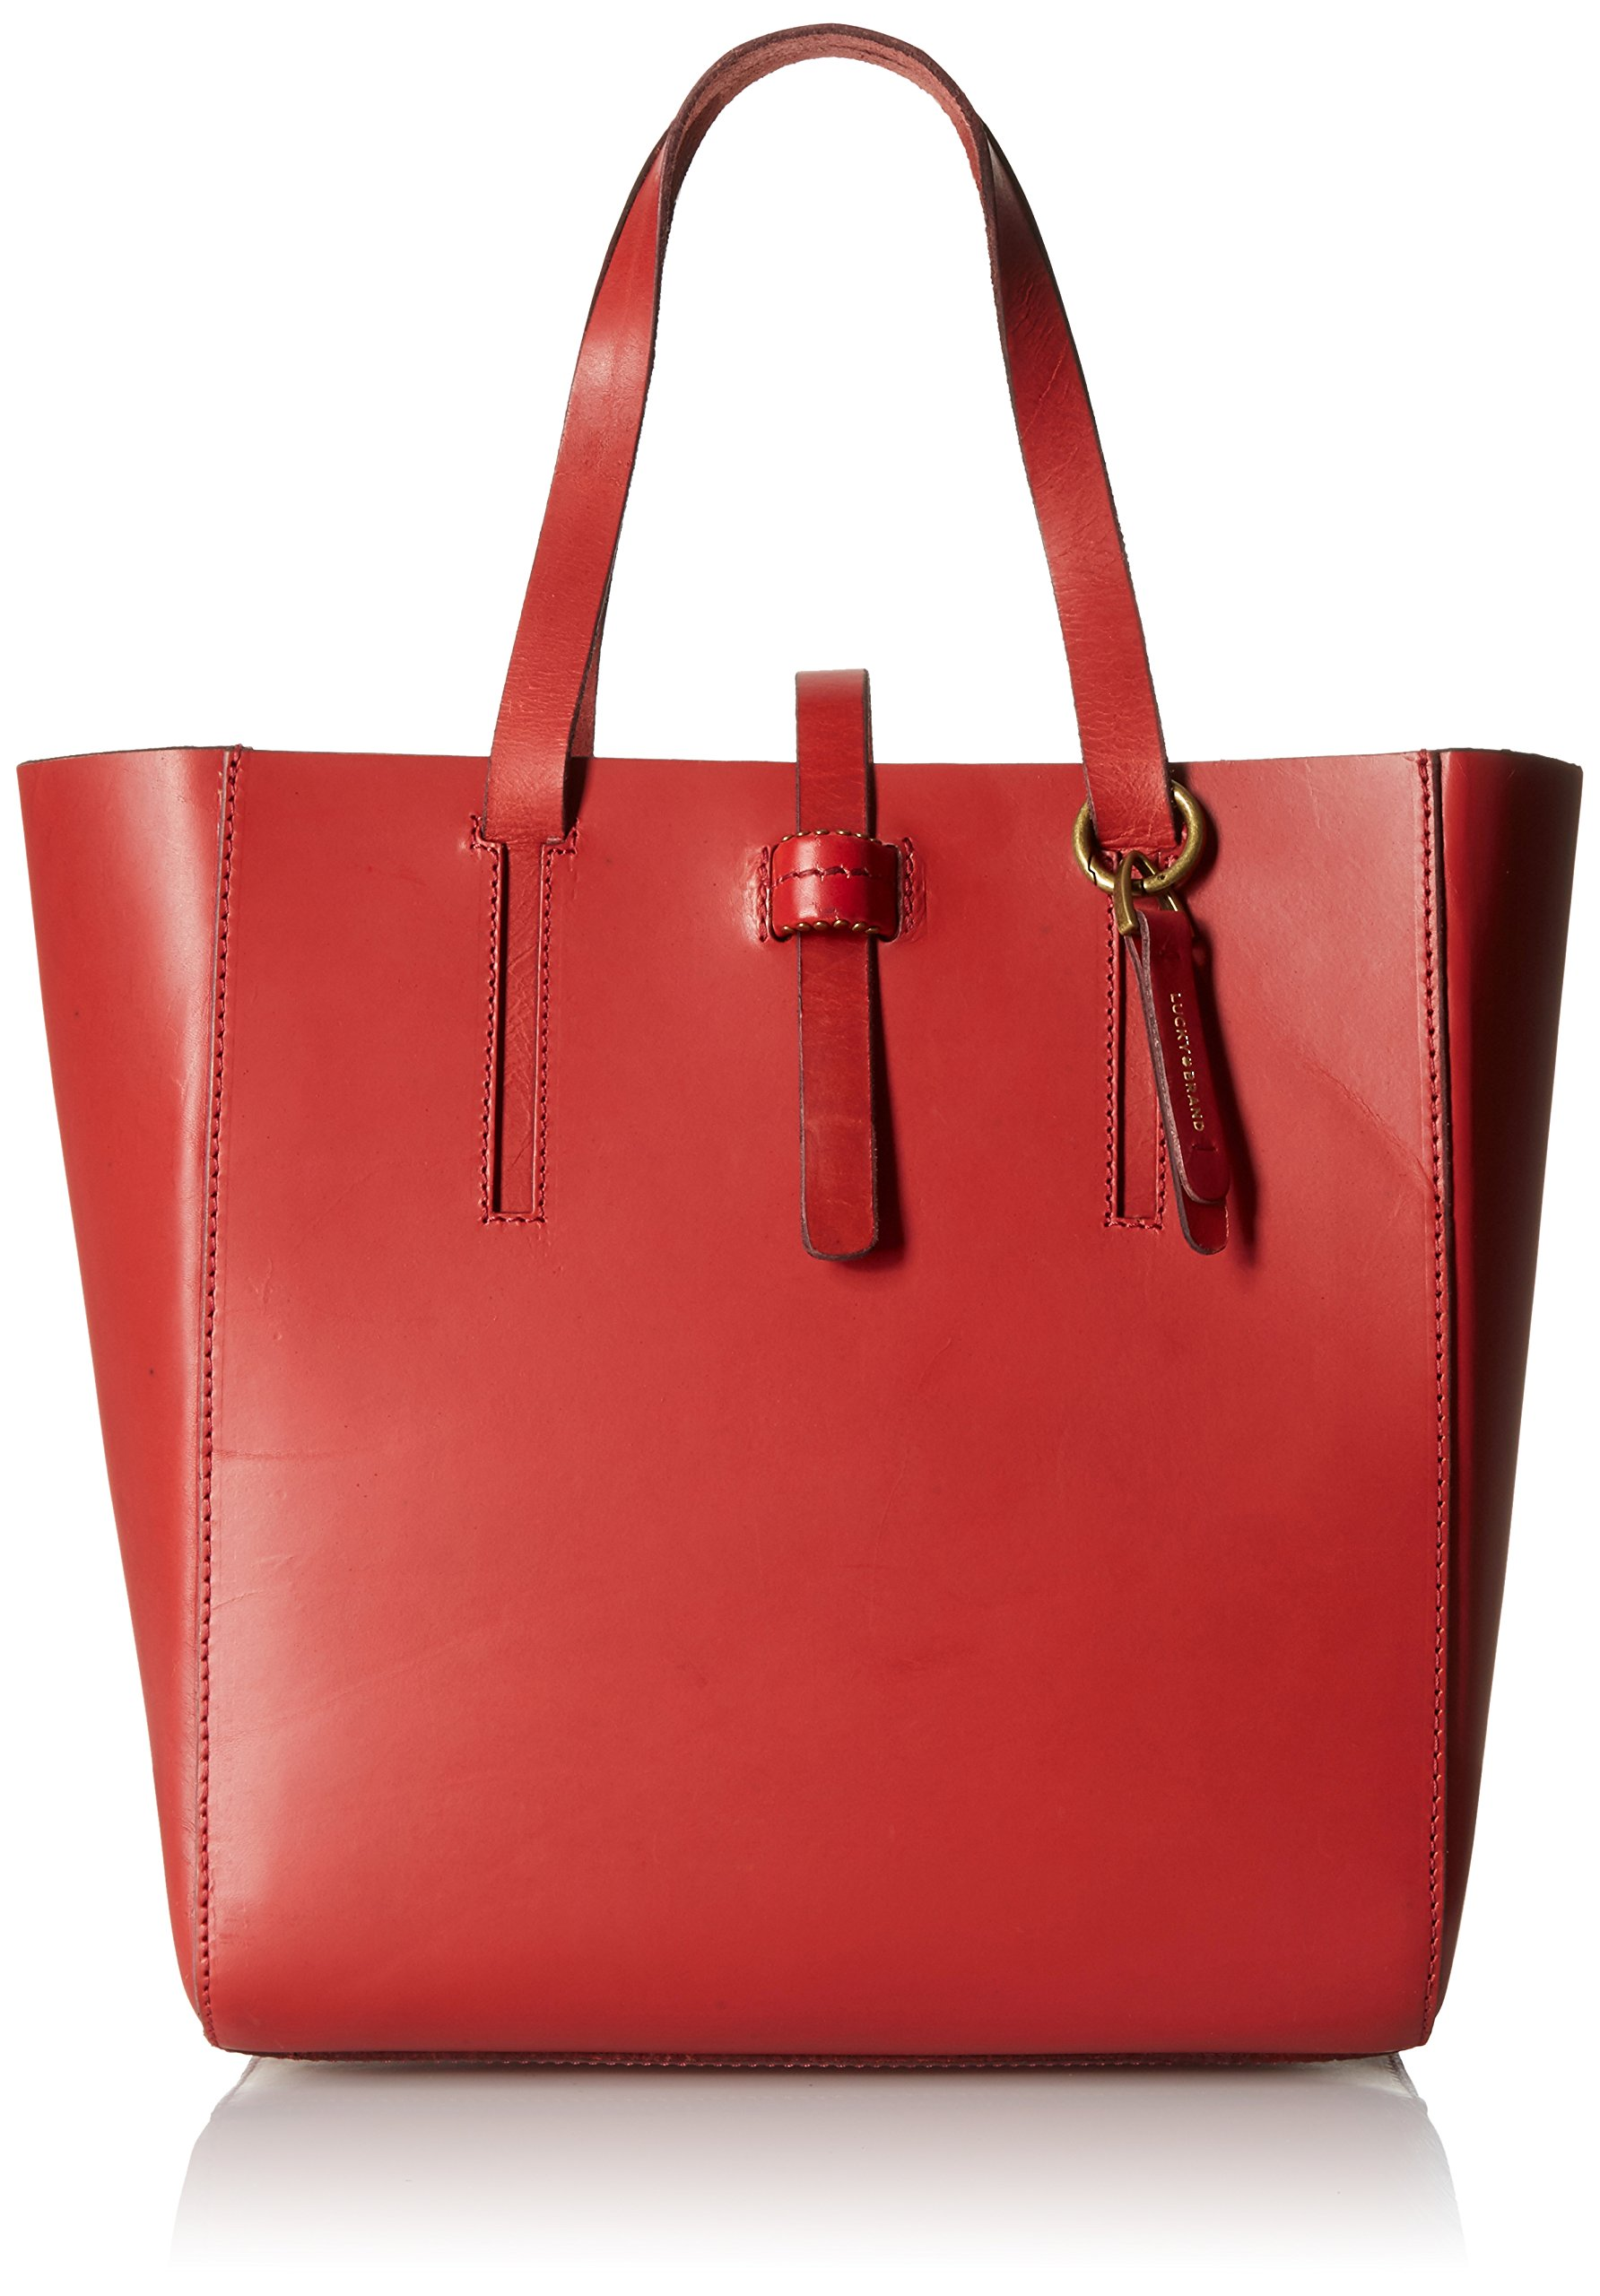 Lucky Brand Dylan Tote Bag, Ruby Red, One Size